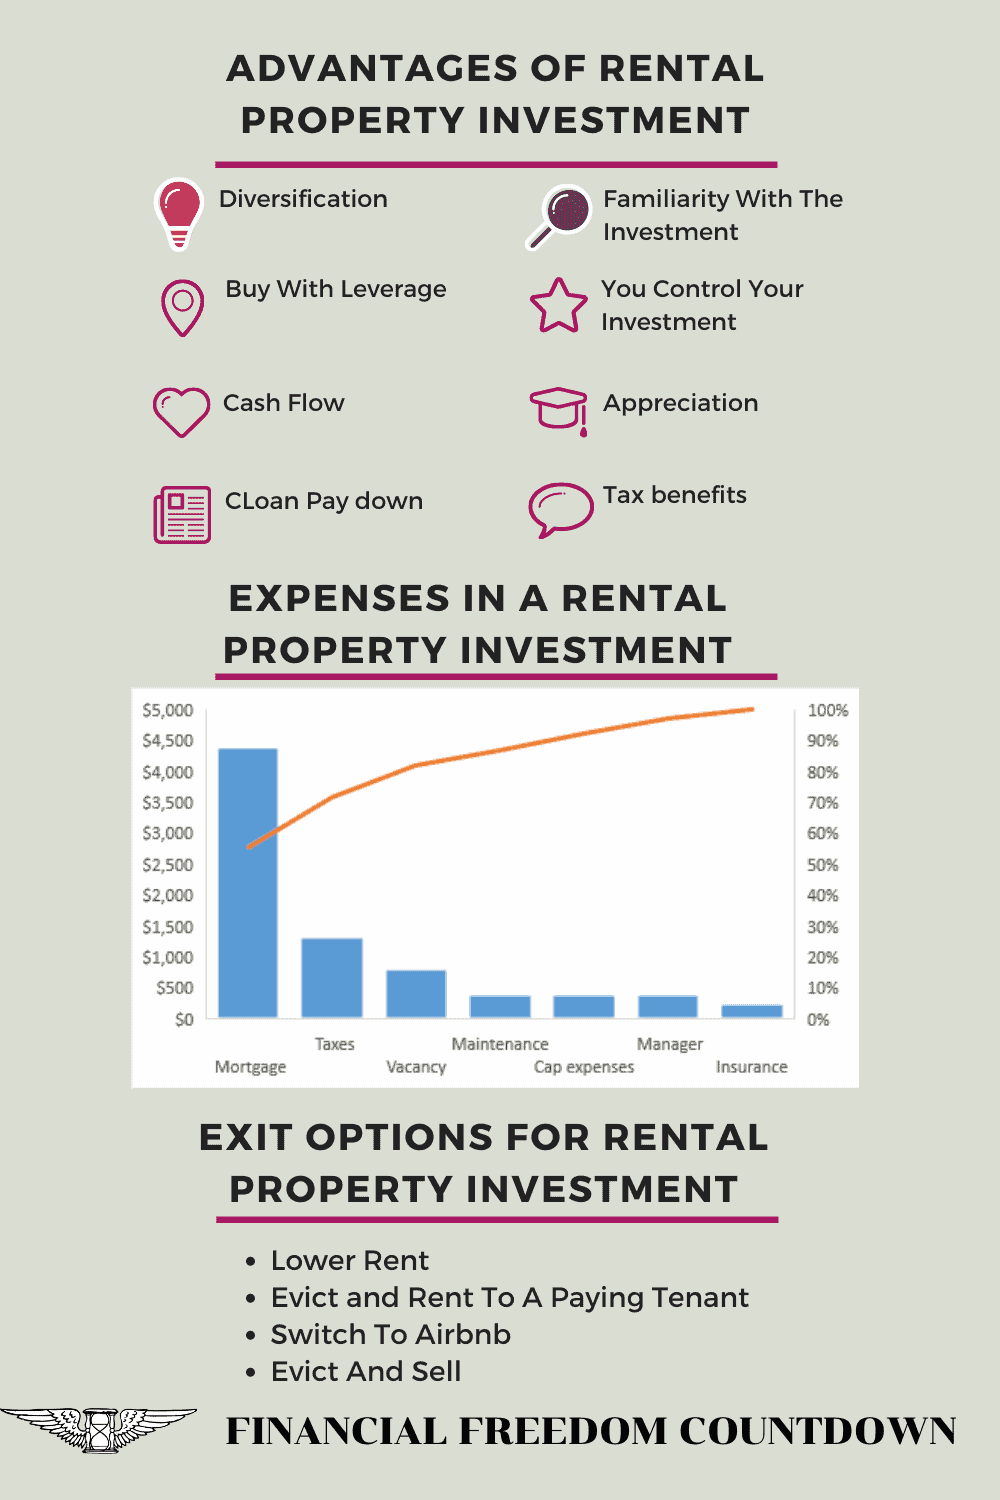 Advantages of Rental property with expenses and exit options